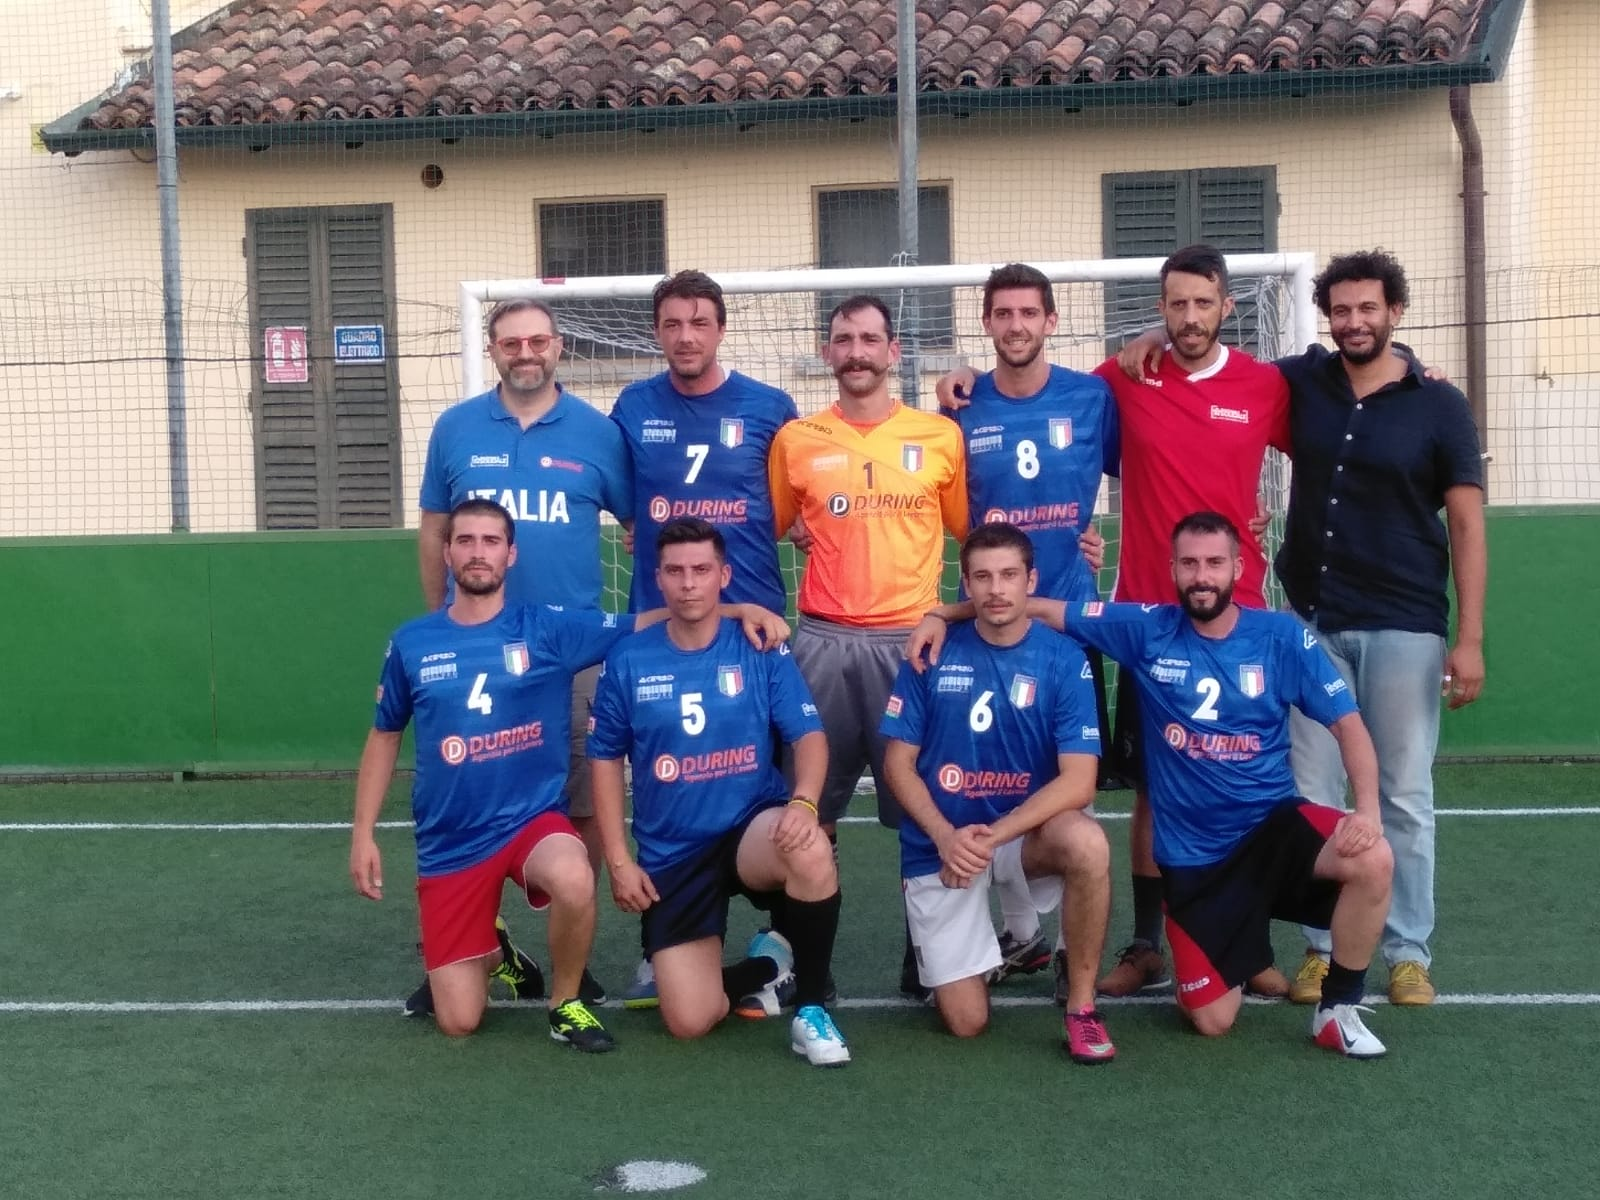 nazionale solidale homeless world cup messico 2018